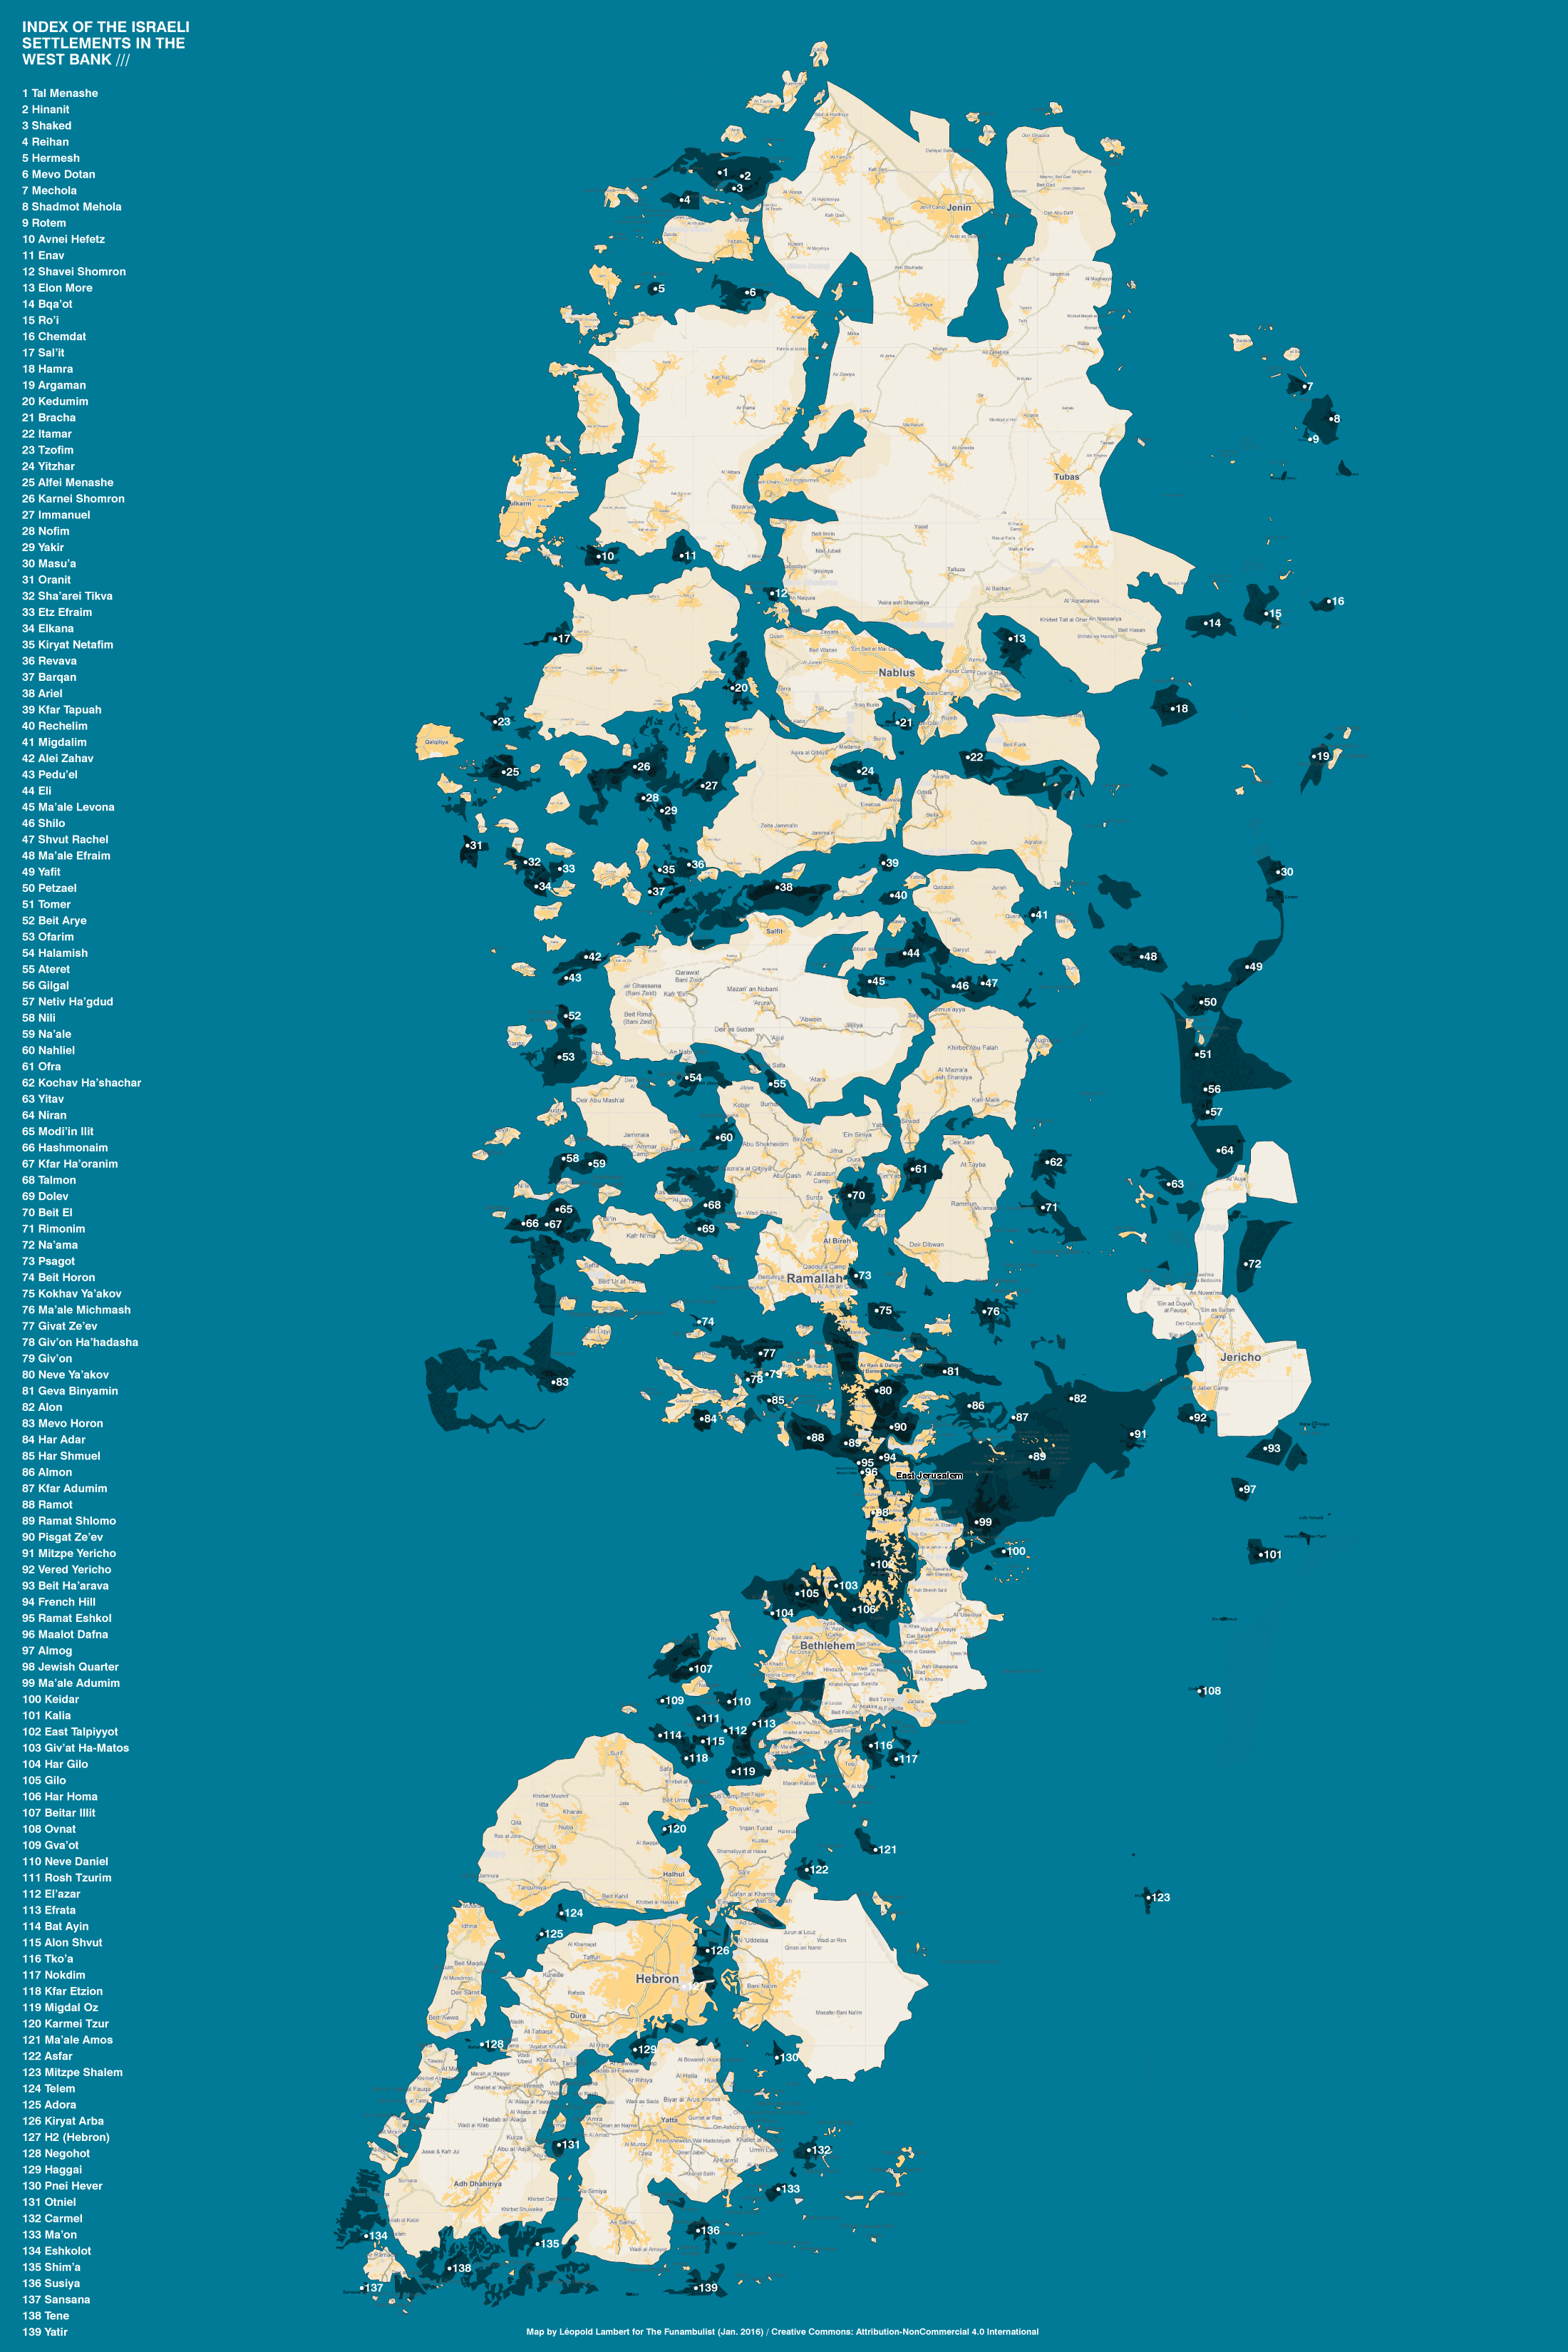 Atlas of the Israeli Settlements - Map by Leopold Lambert for The Funambulist (20160